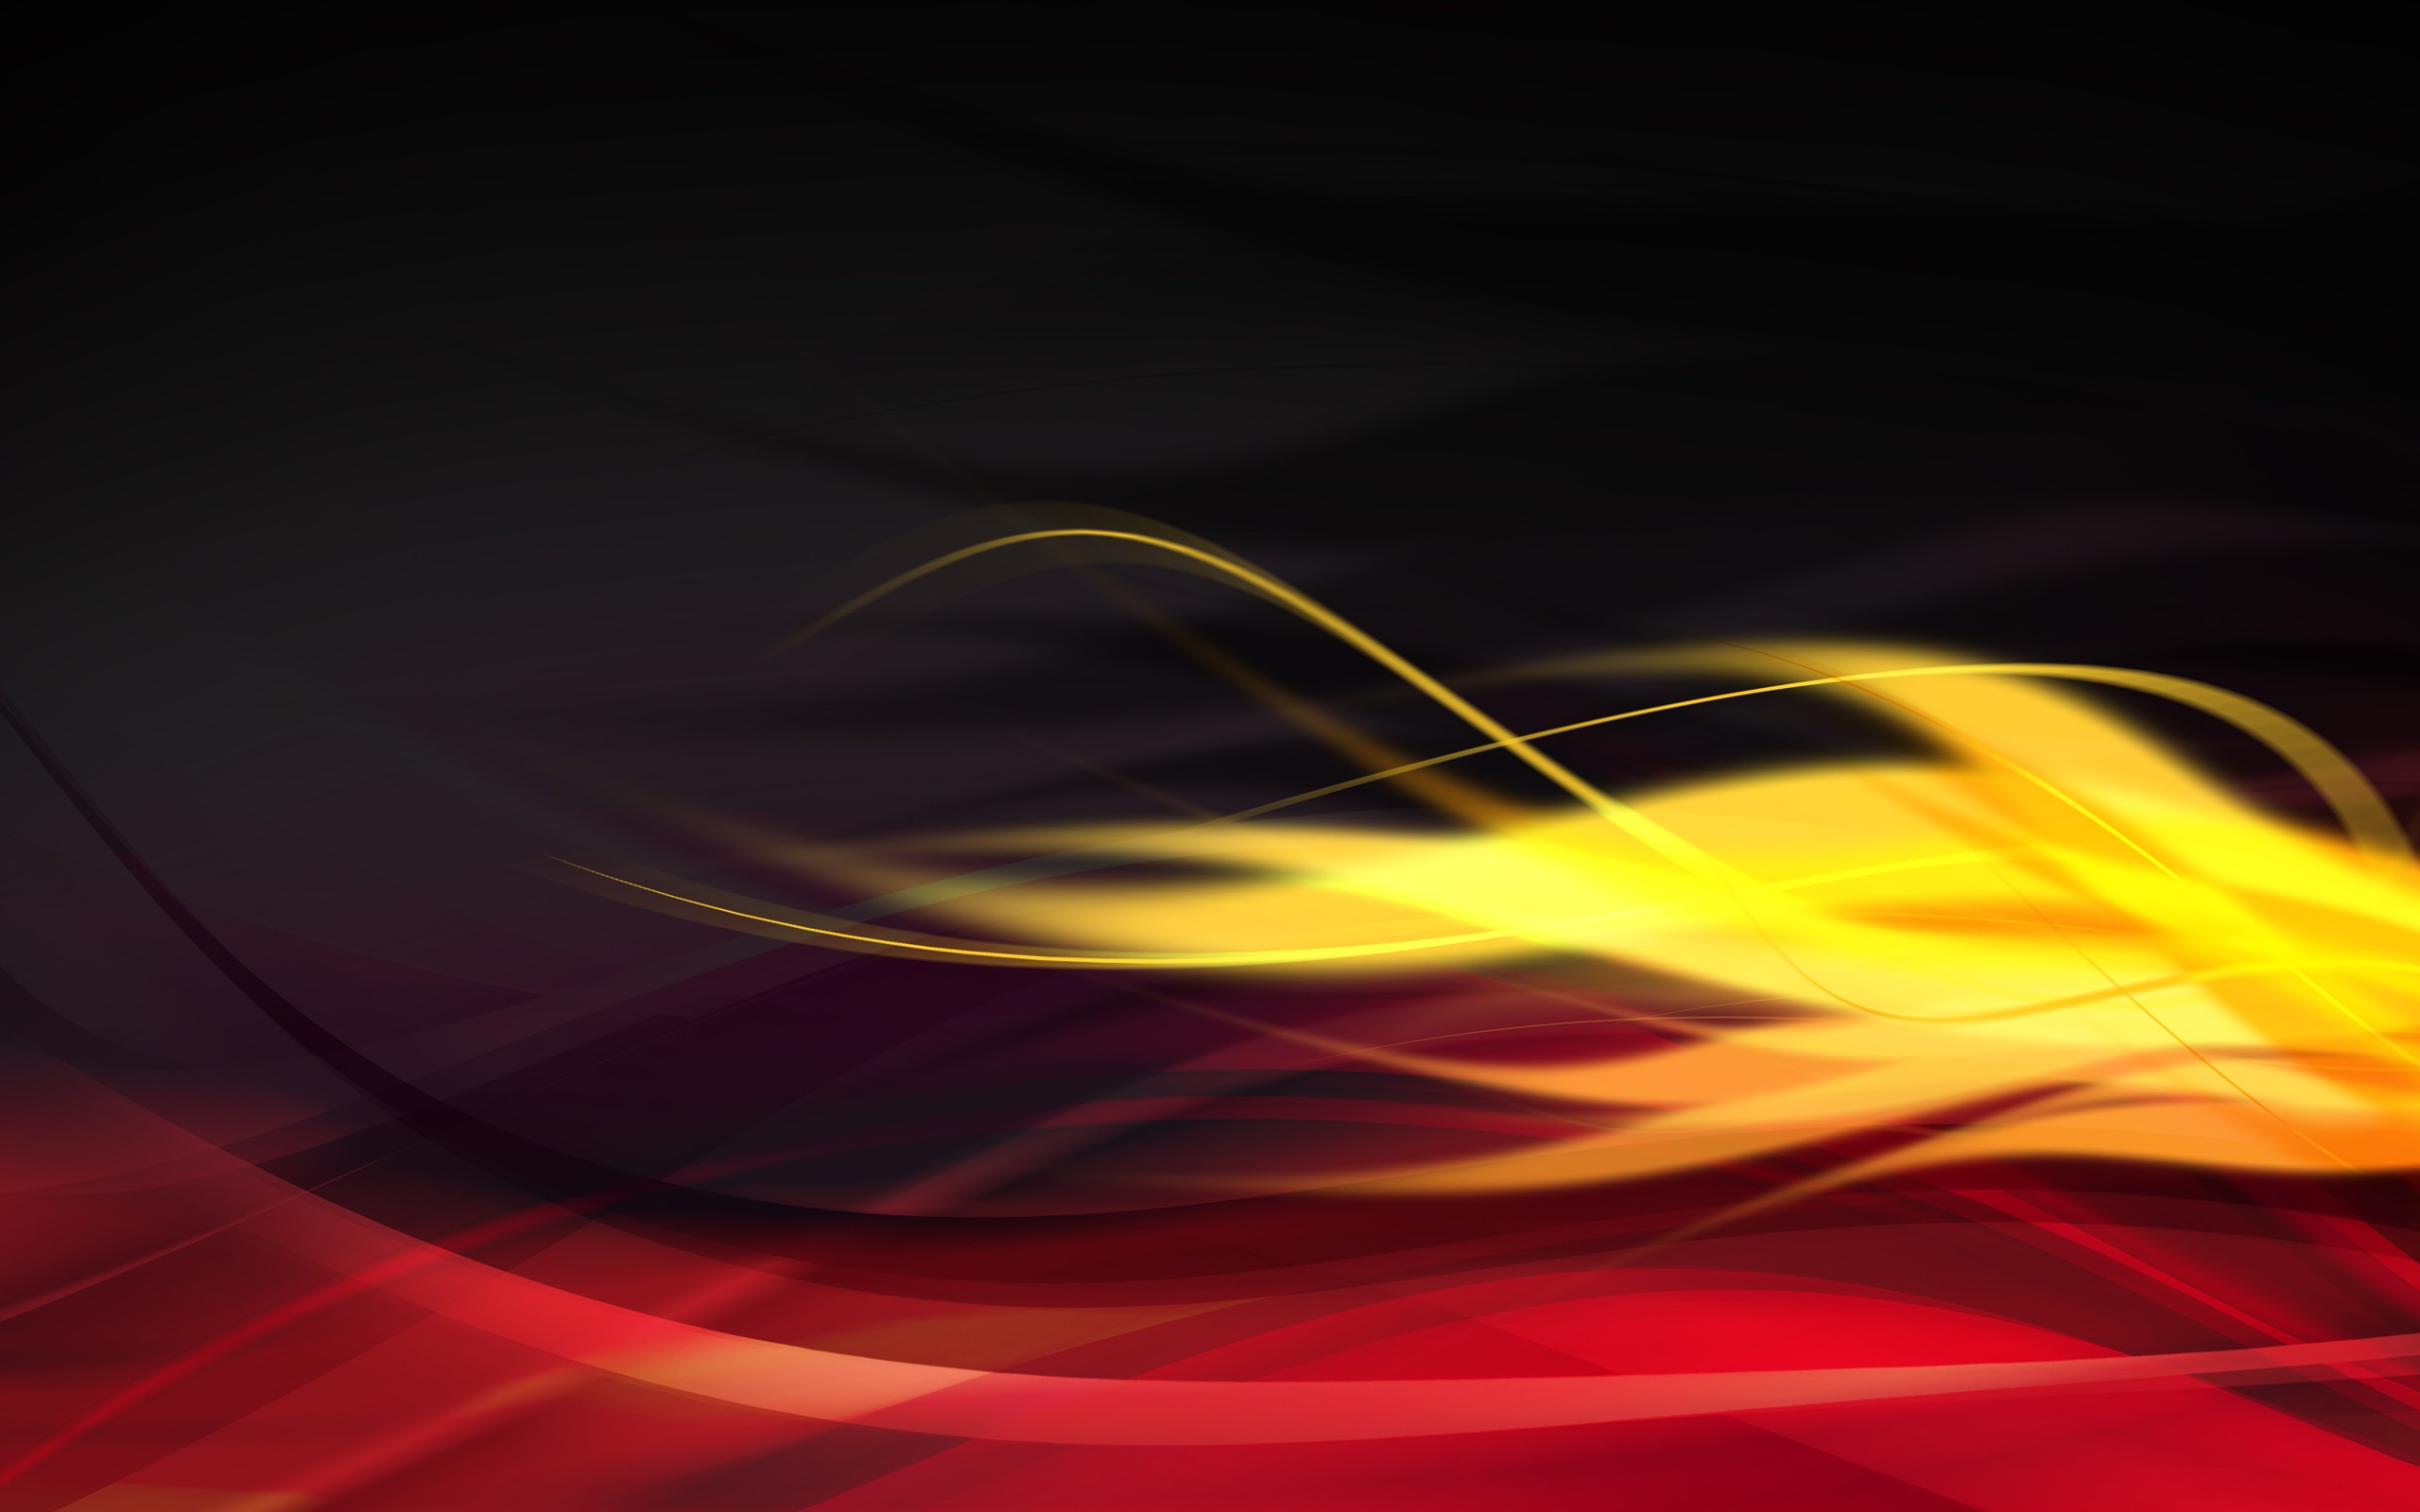 Abstract Graphic Design Wavy Lines Red Yellow